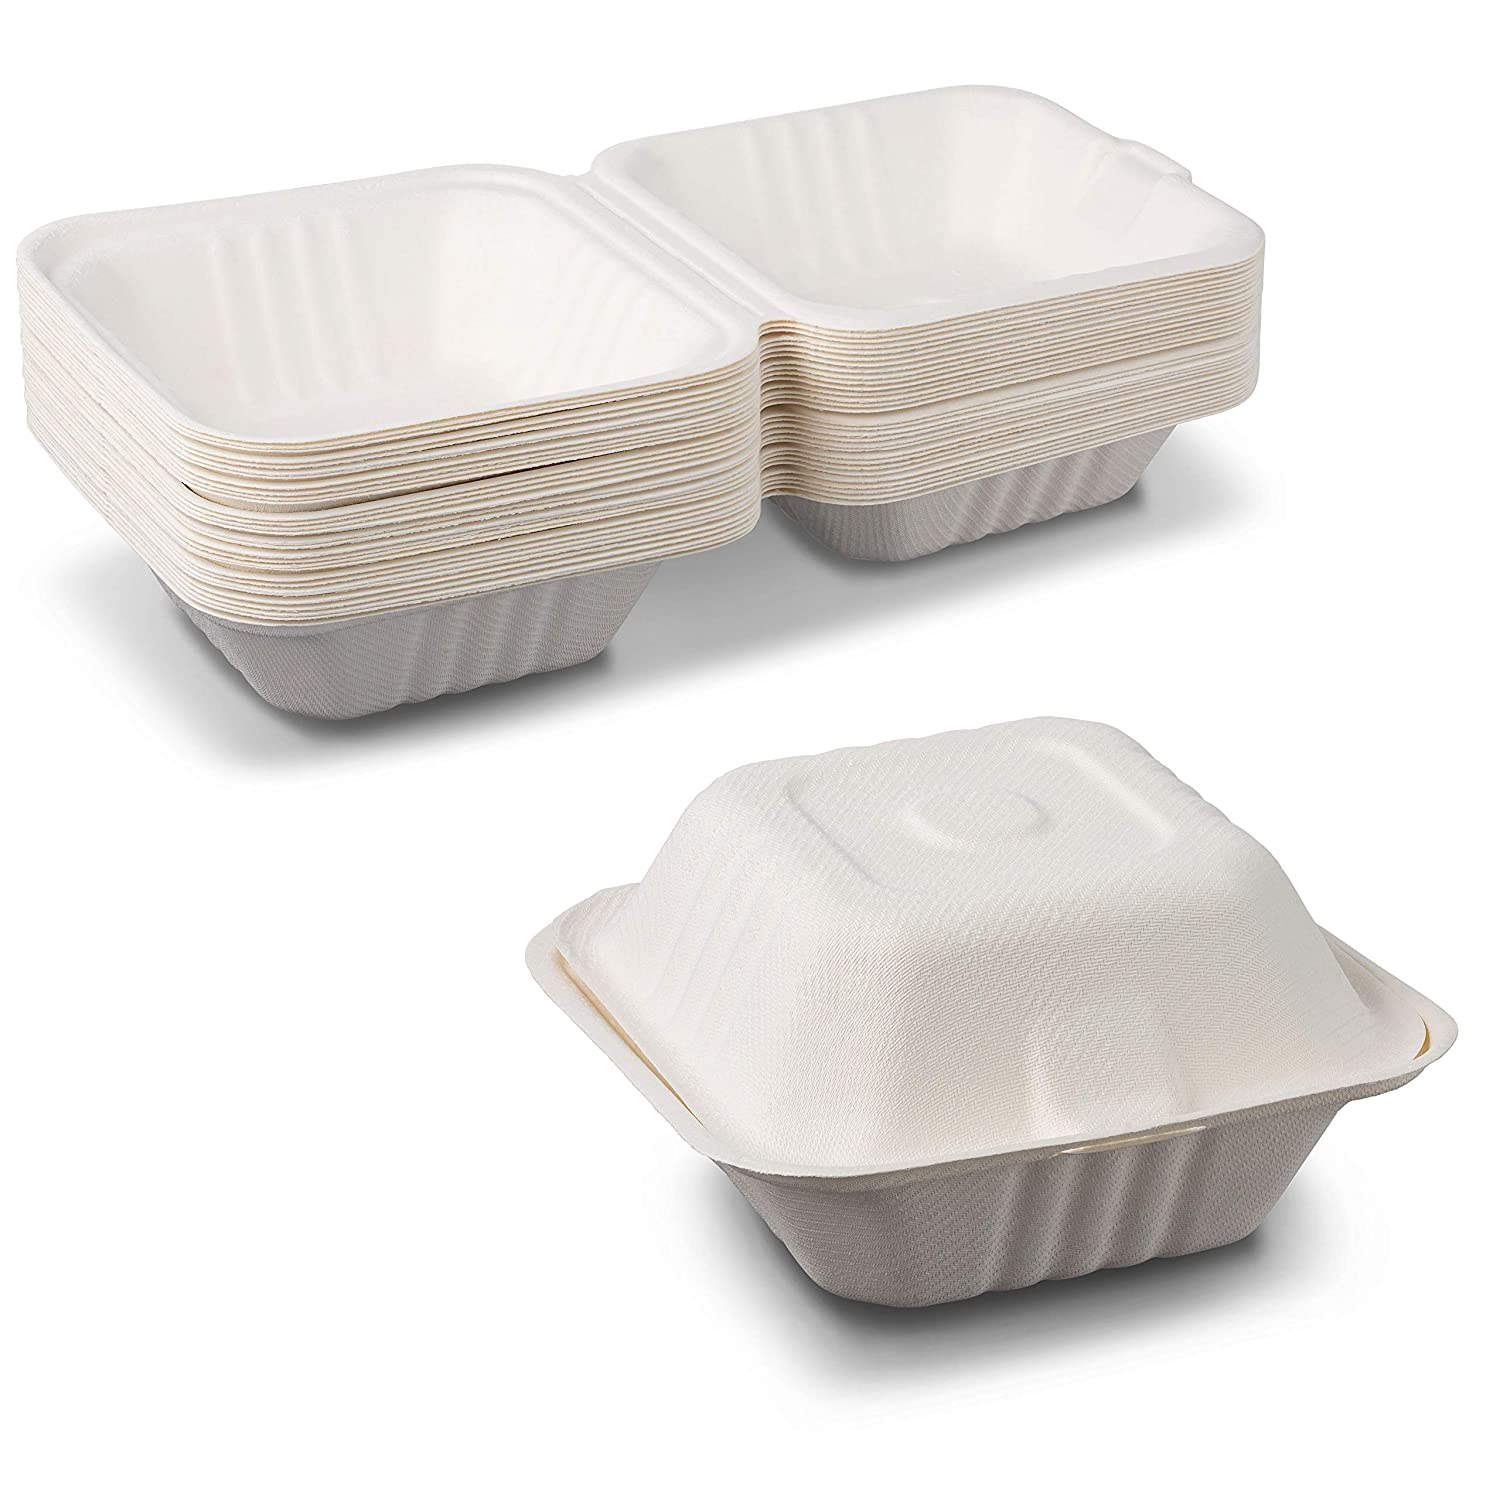 Houston Mall Quantity limited Take-Out Container Clamshell 6 x inches Fiber Molded t Bagasse